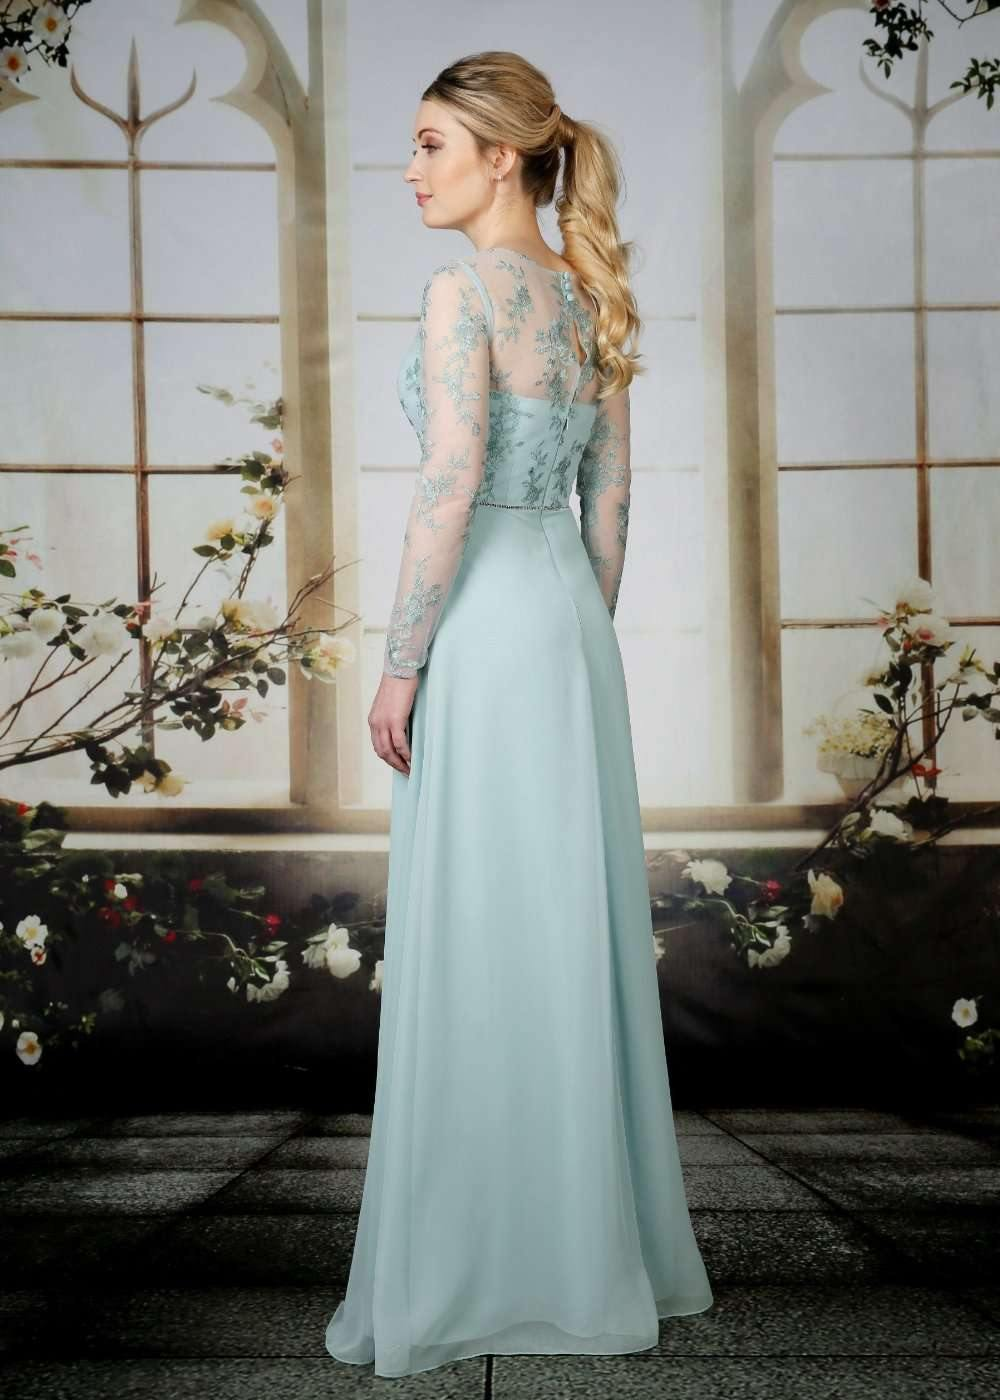 Florence Nieve Occasion - Adore Bridal and Occasion Wear